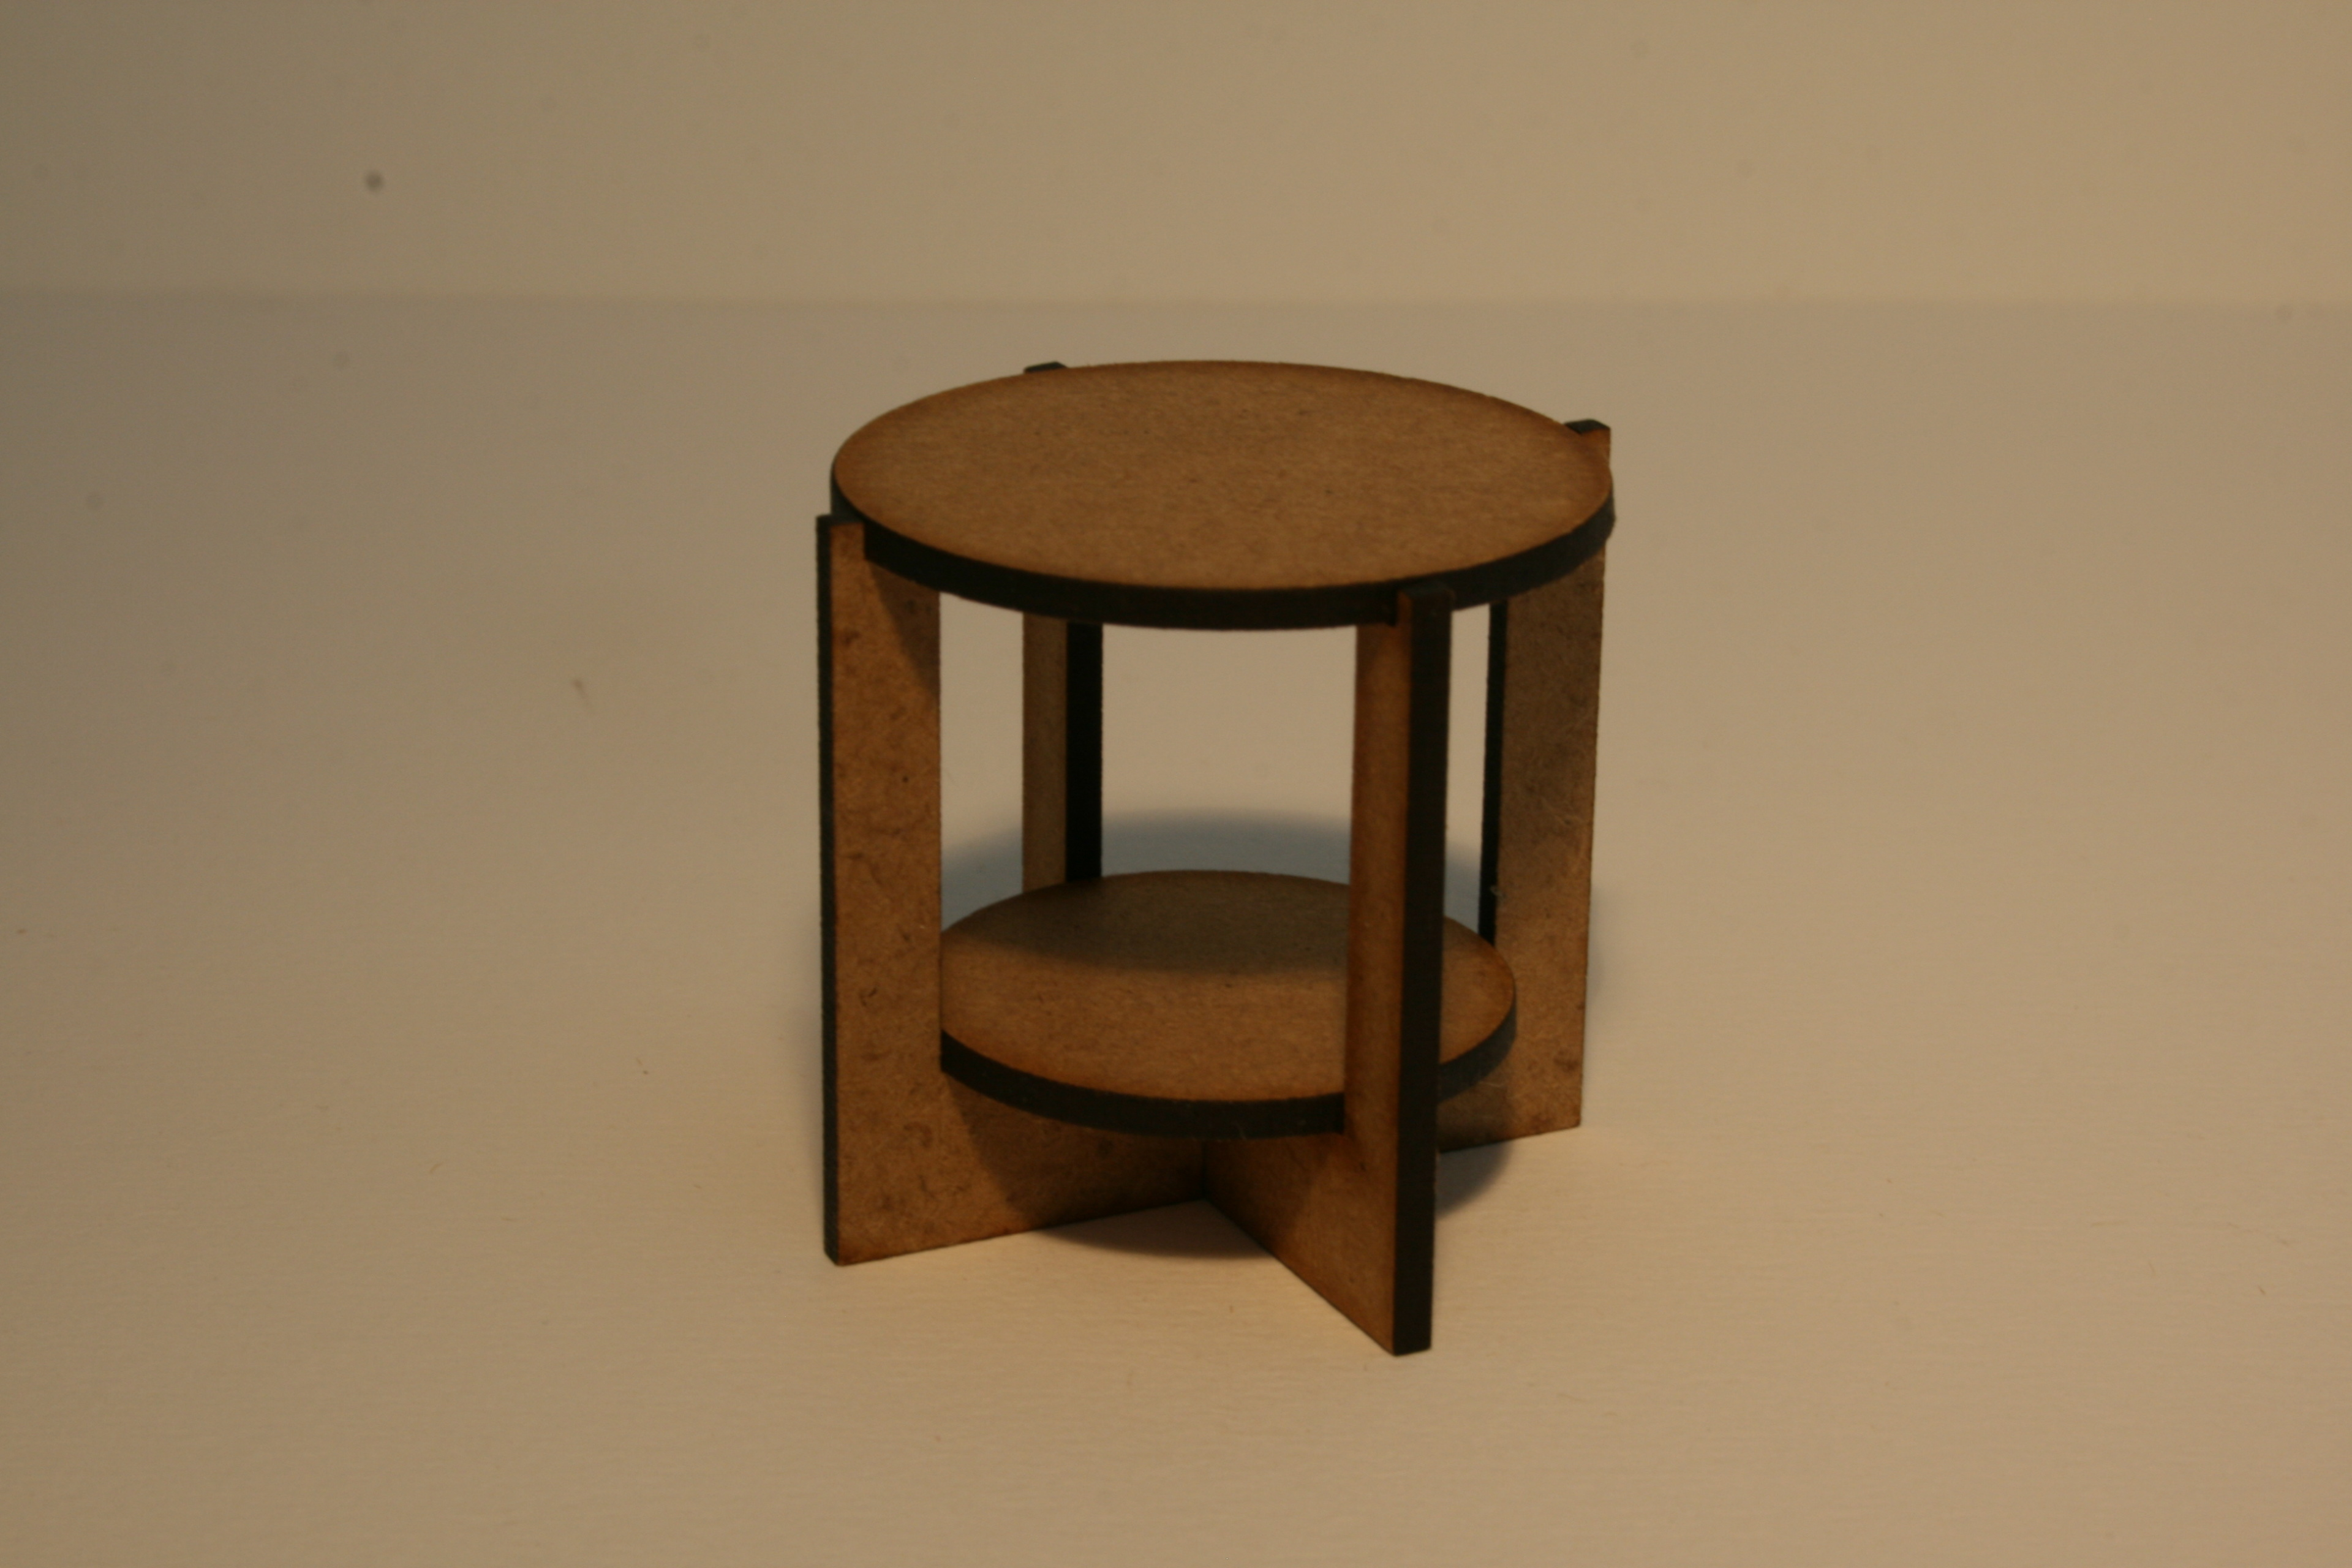 Small Round Sofa Table with MDF Top Kit